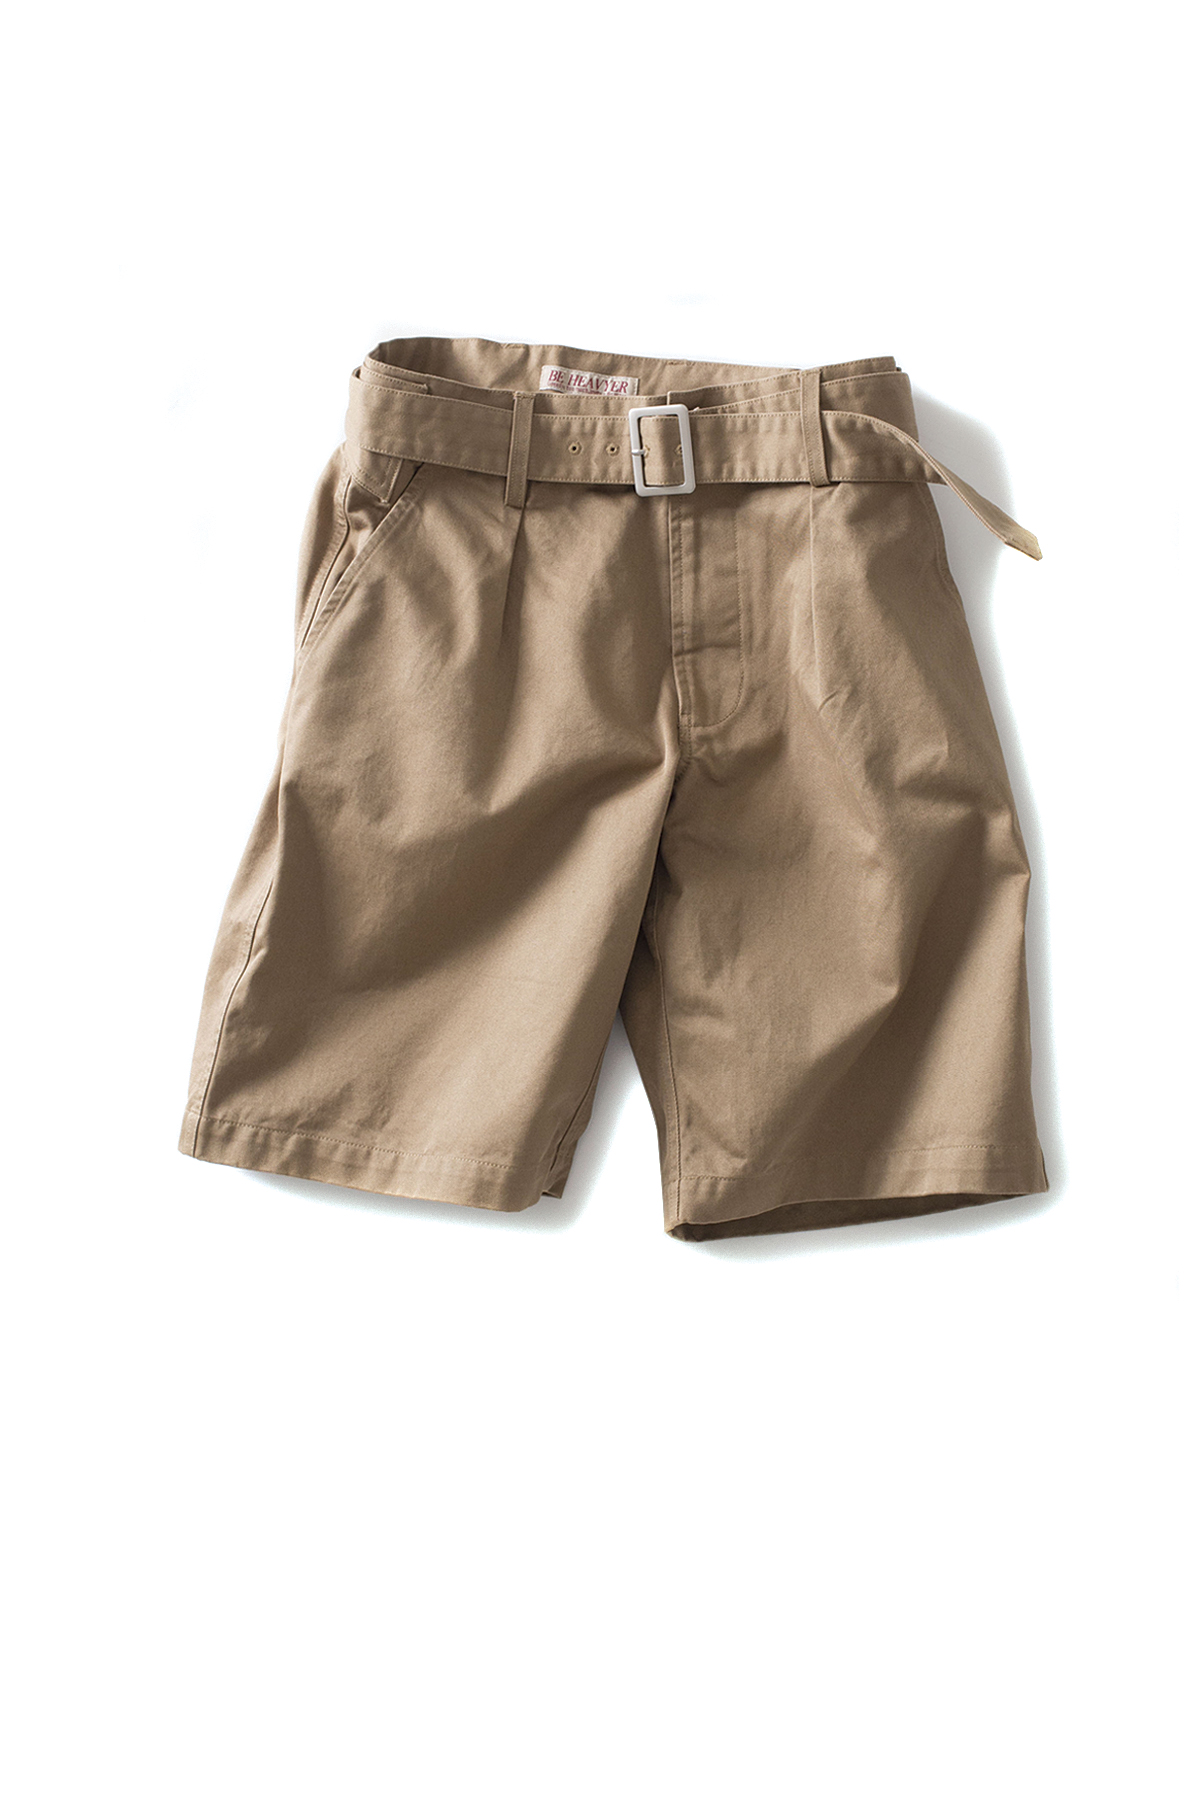 Be Heavyer : Belted Half Pants (Beige)